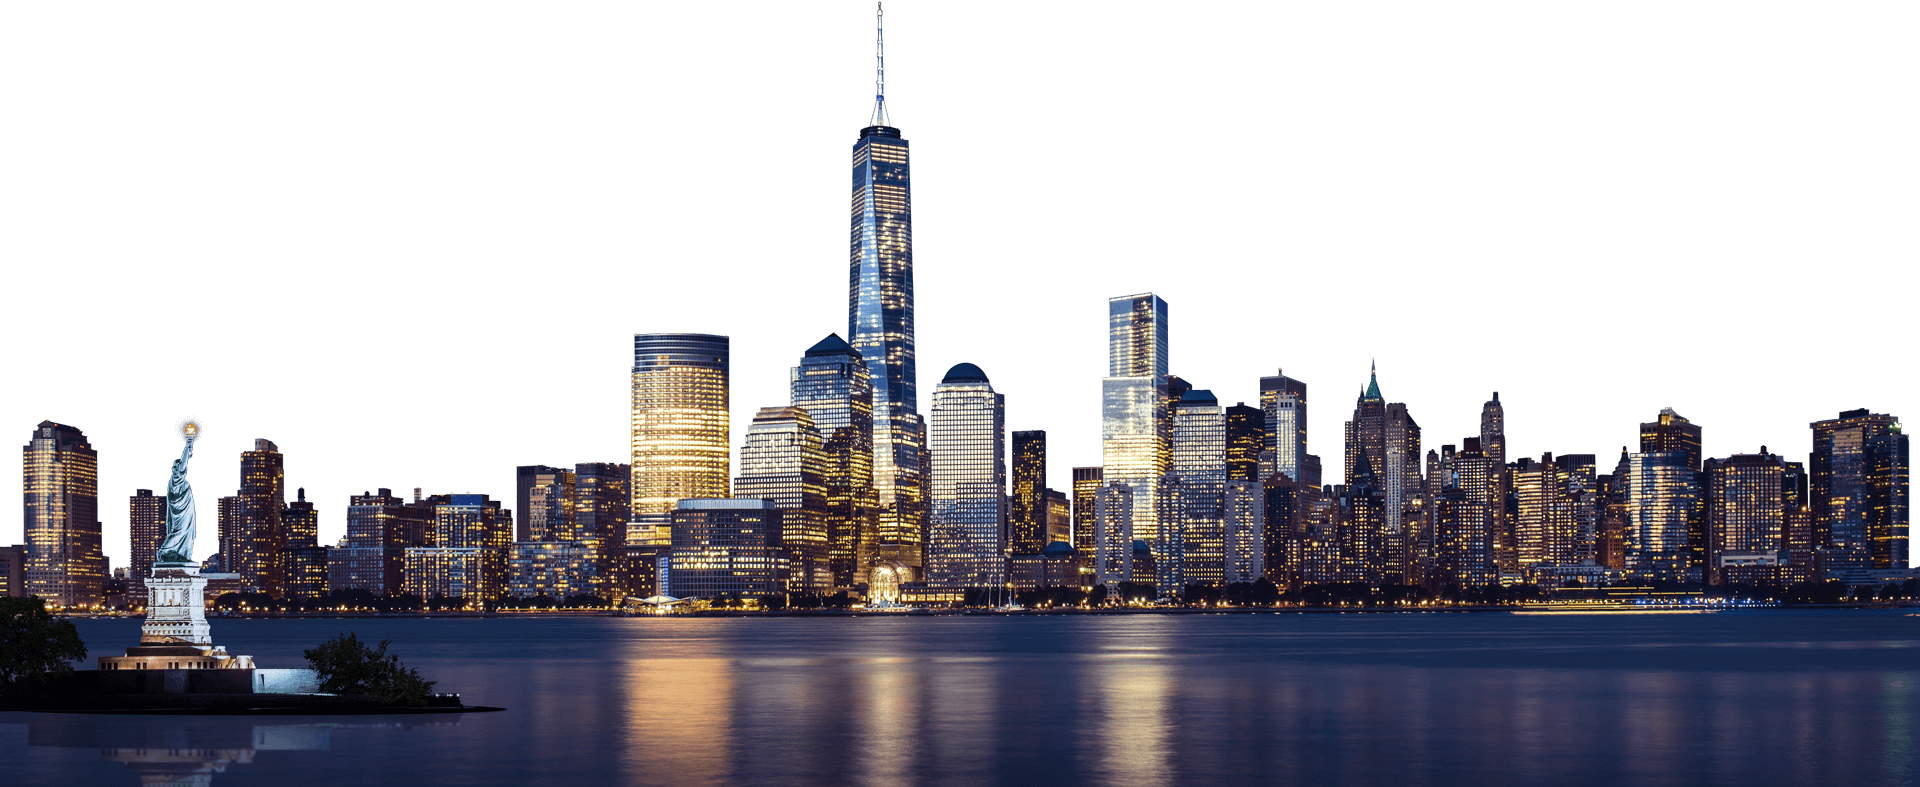 City png. New york skyline image